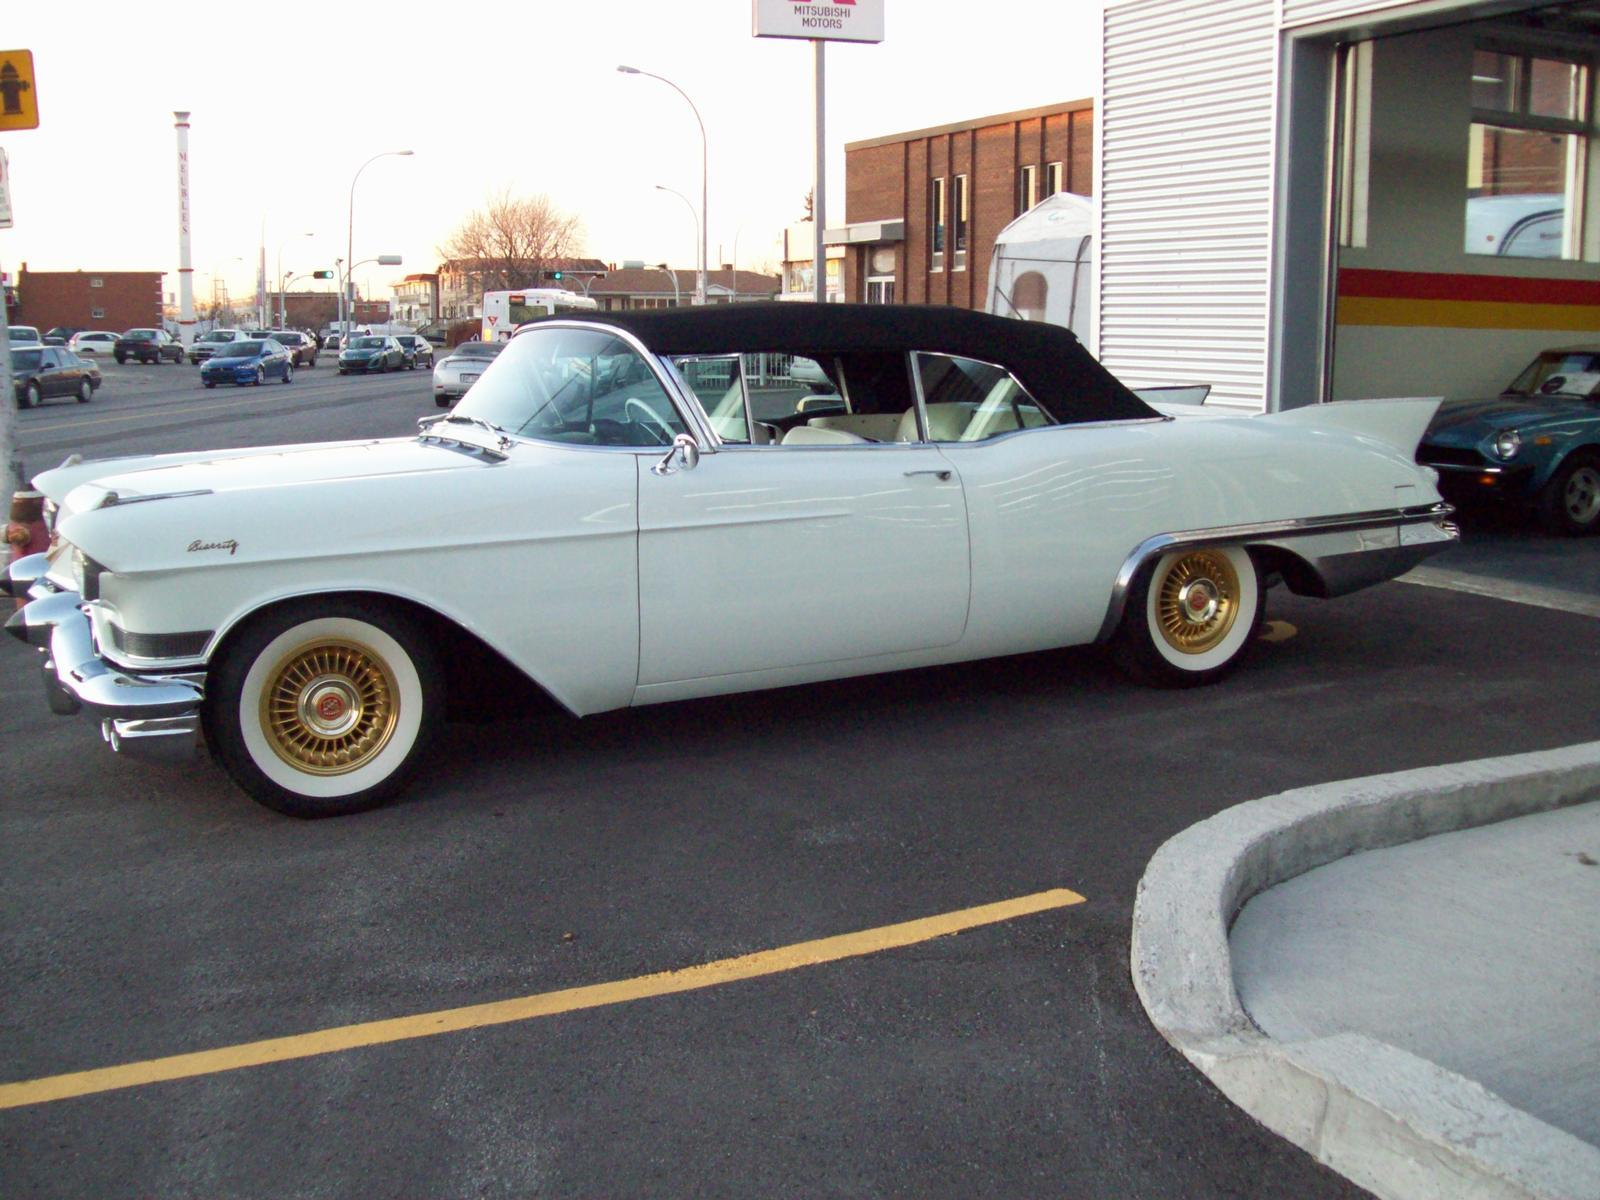 Used 1957 cadillac eldorado biarritz convertible for sale in saint l onard john scotti classic cars h1r 2y7 2070752